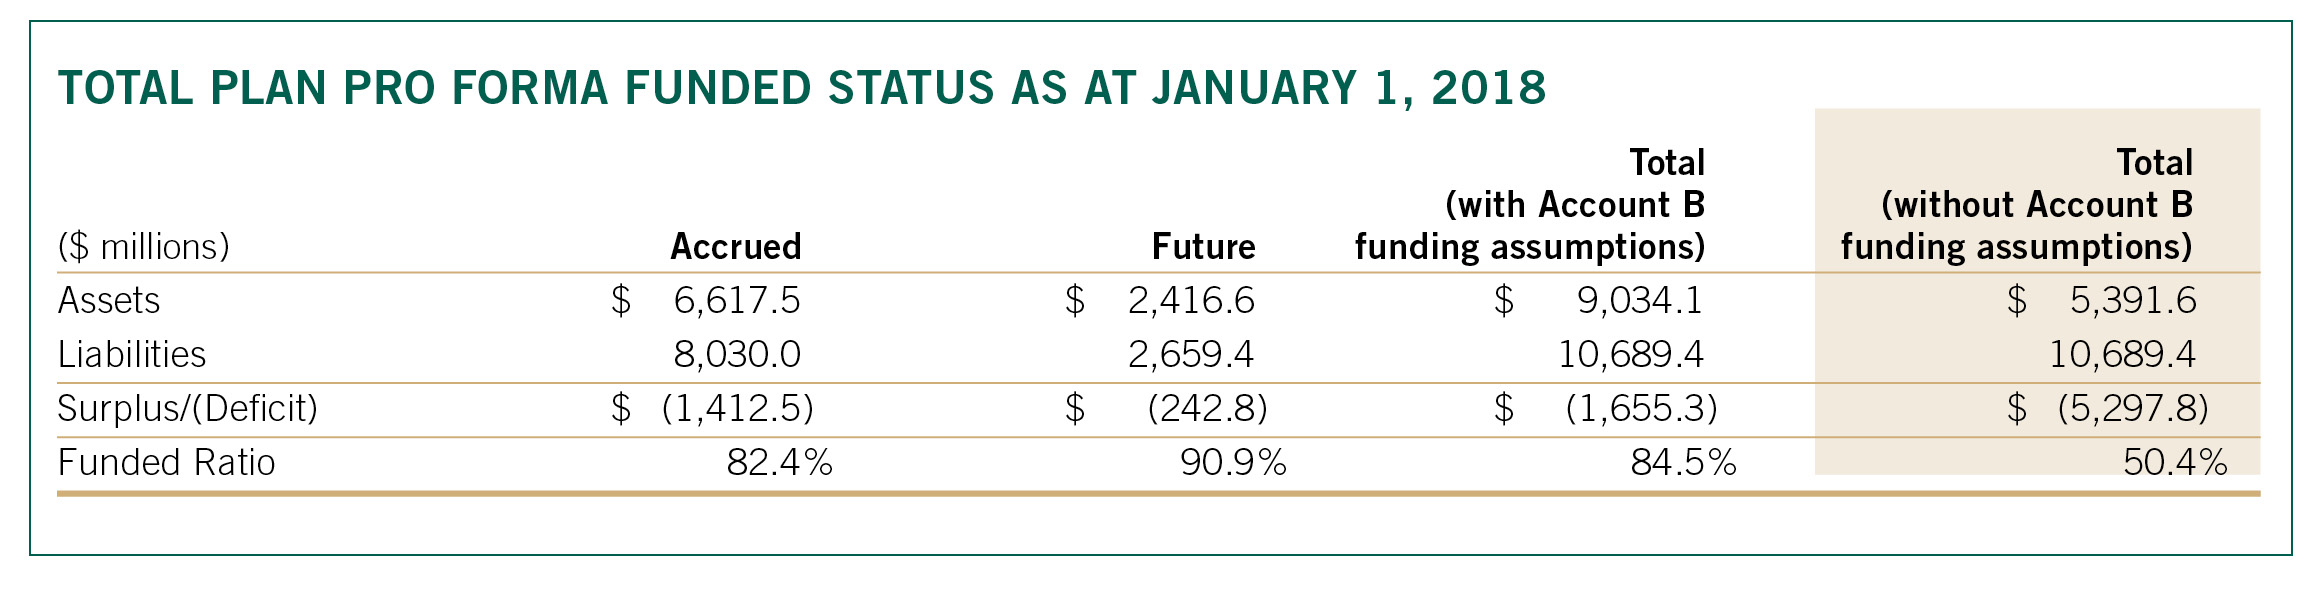 TOTAL PLAN PRO FORMA FUNDED STATUS as at Jan 1 18